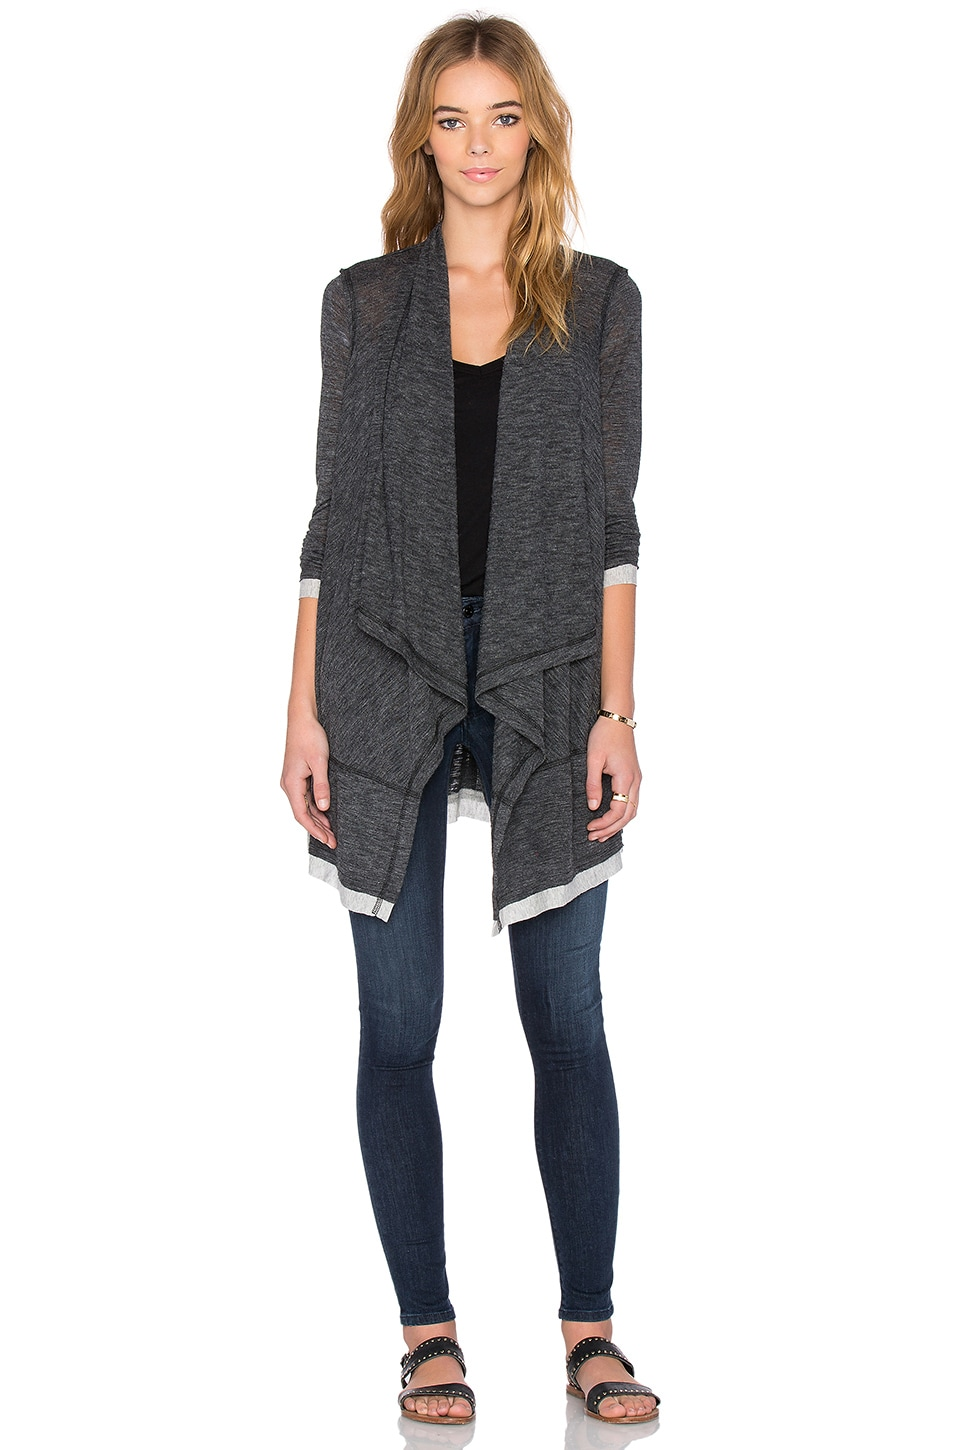 Splendid Melange Drape Cardigan in Heather Charcoal